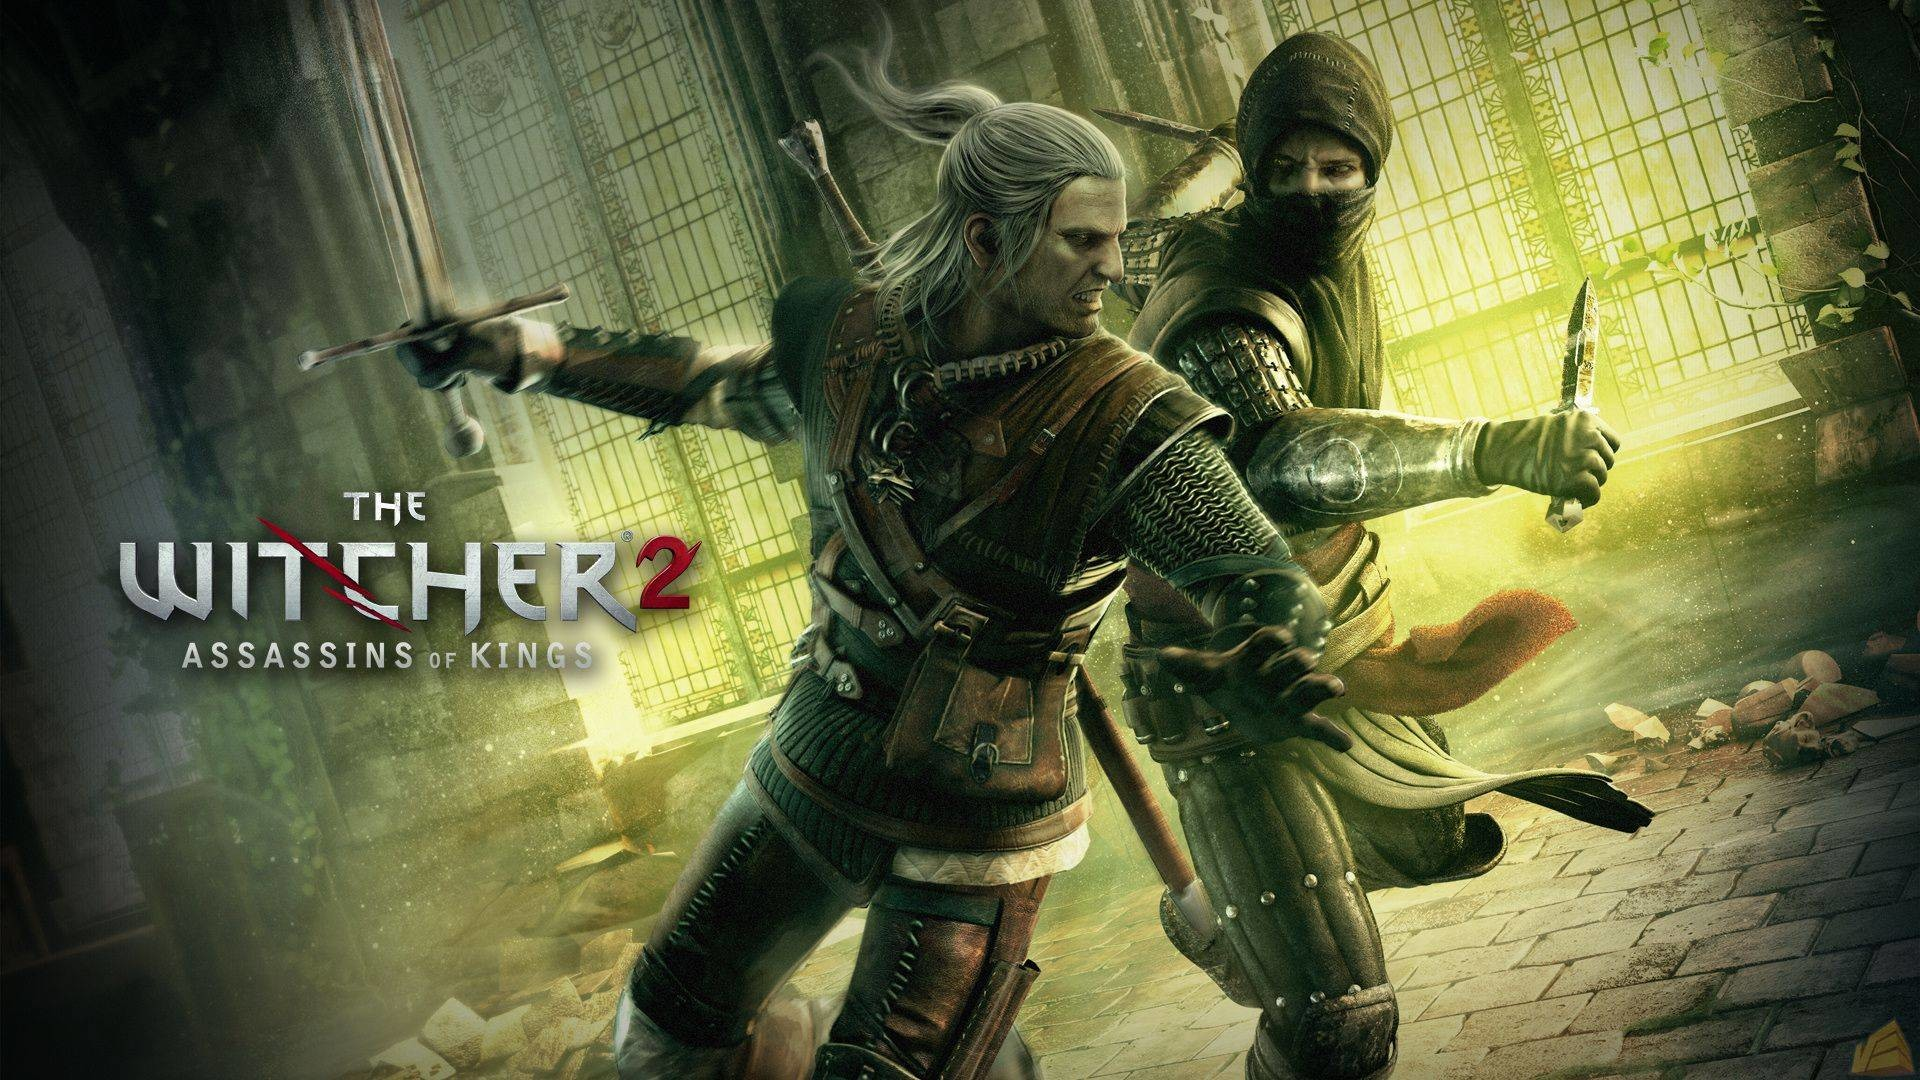 The Witcher 2. Download The Witcher wallpaper